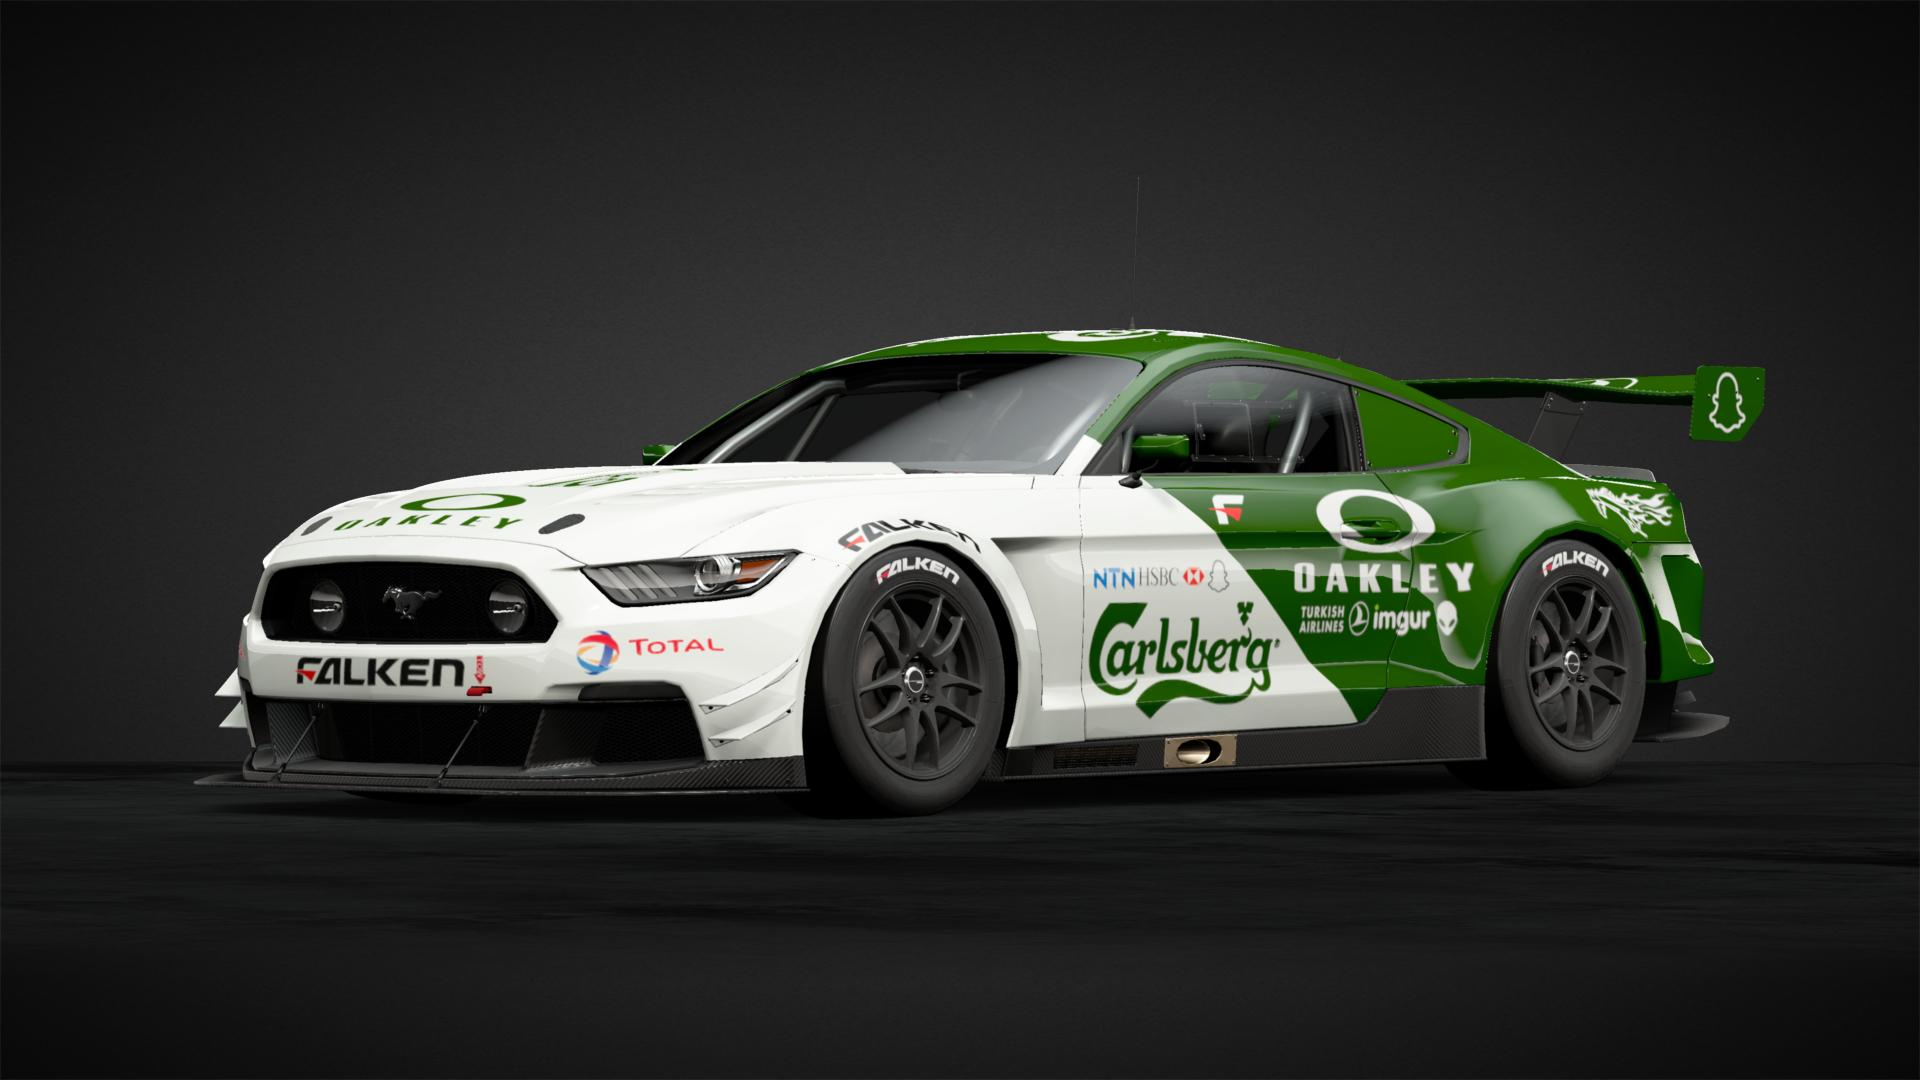 c7aacaf5c89 Dipped in Green - Car Livery by lex5248 | Community | Gran Turismo Sport